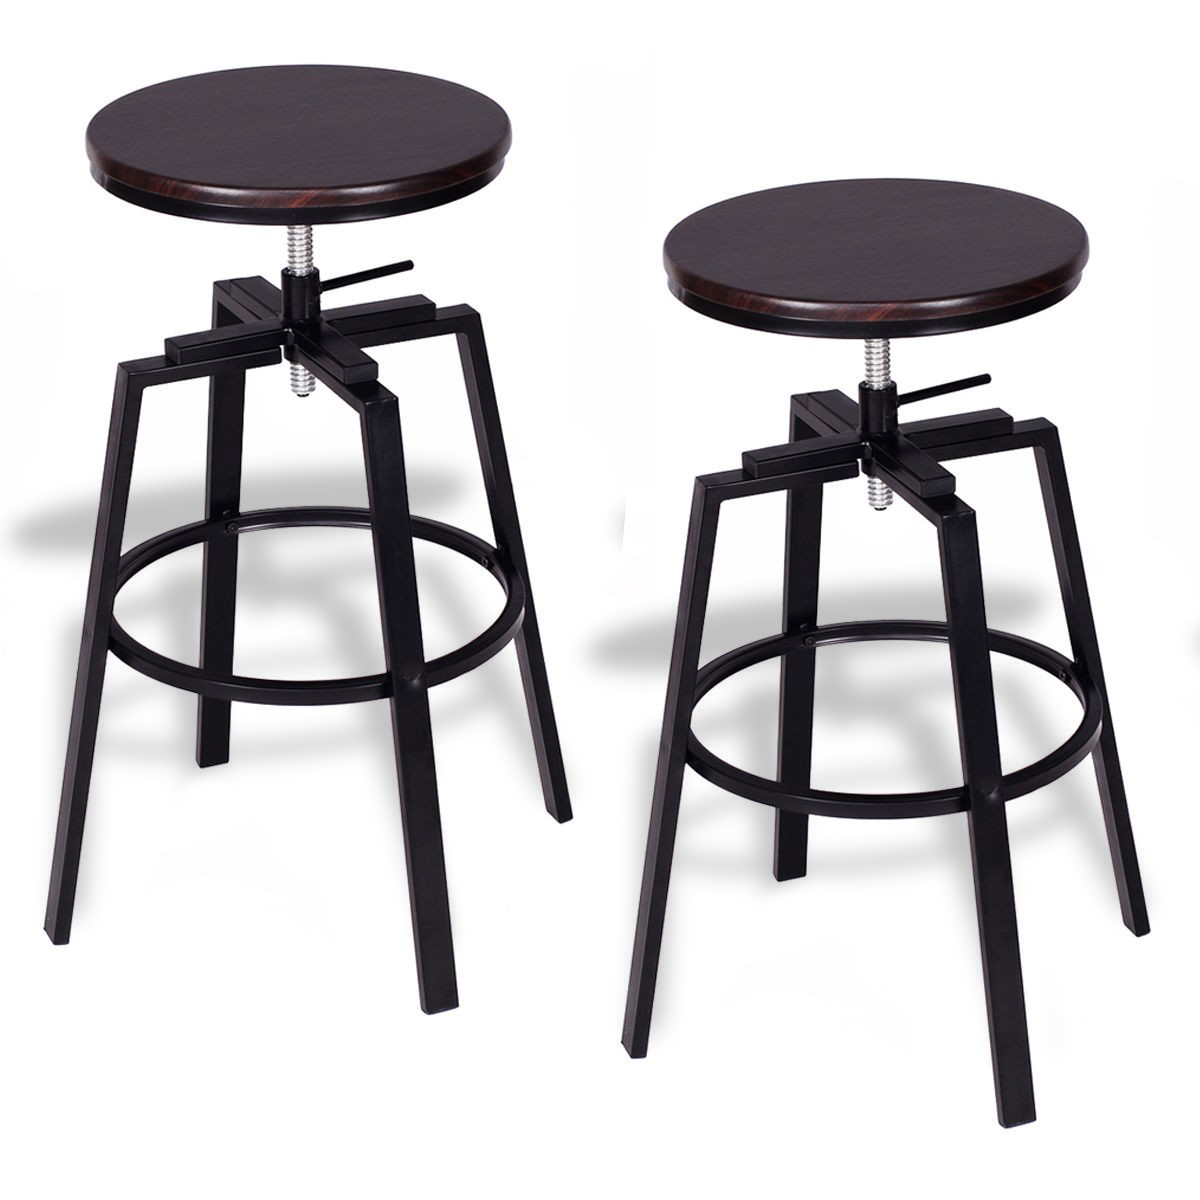 Table Bar Stools